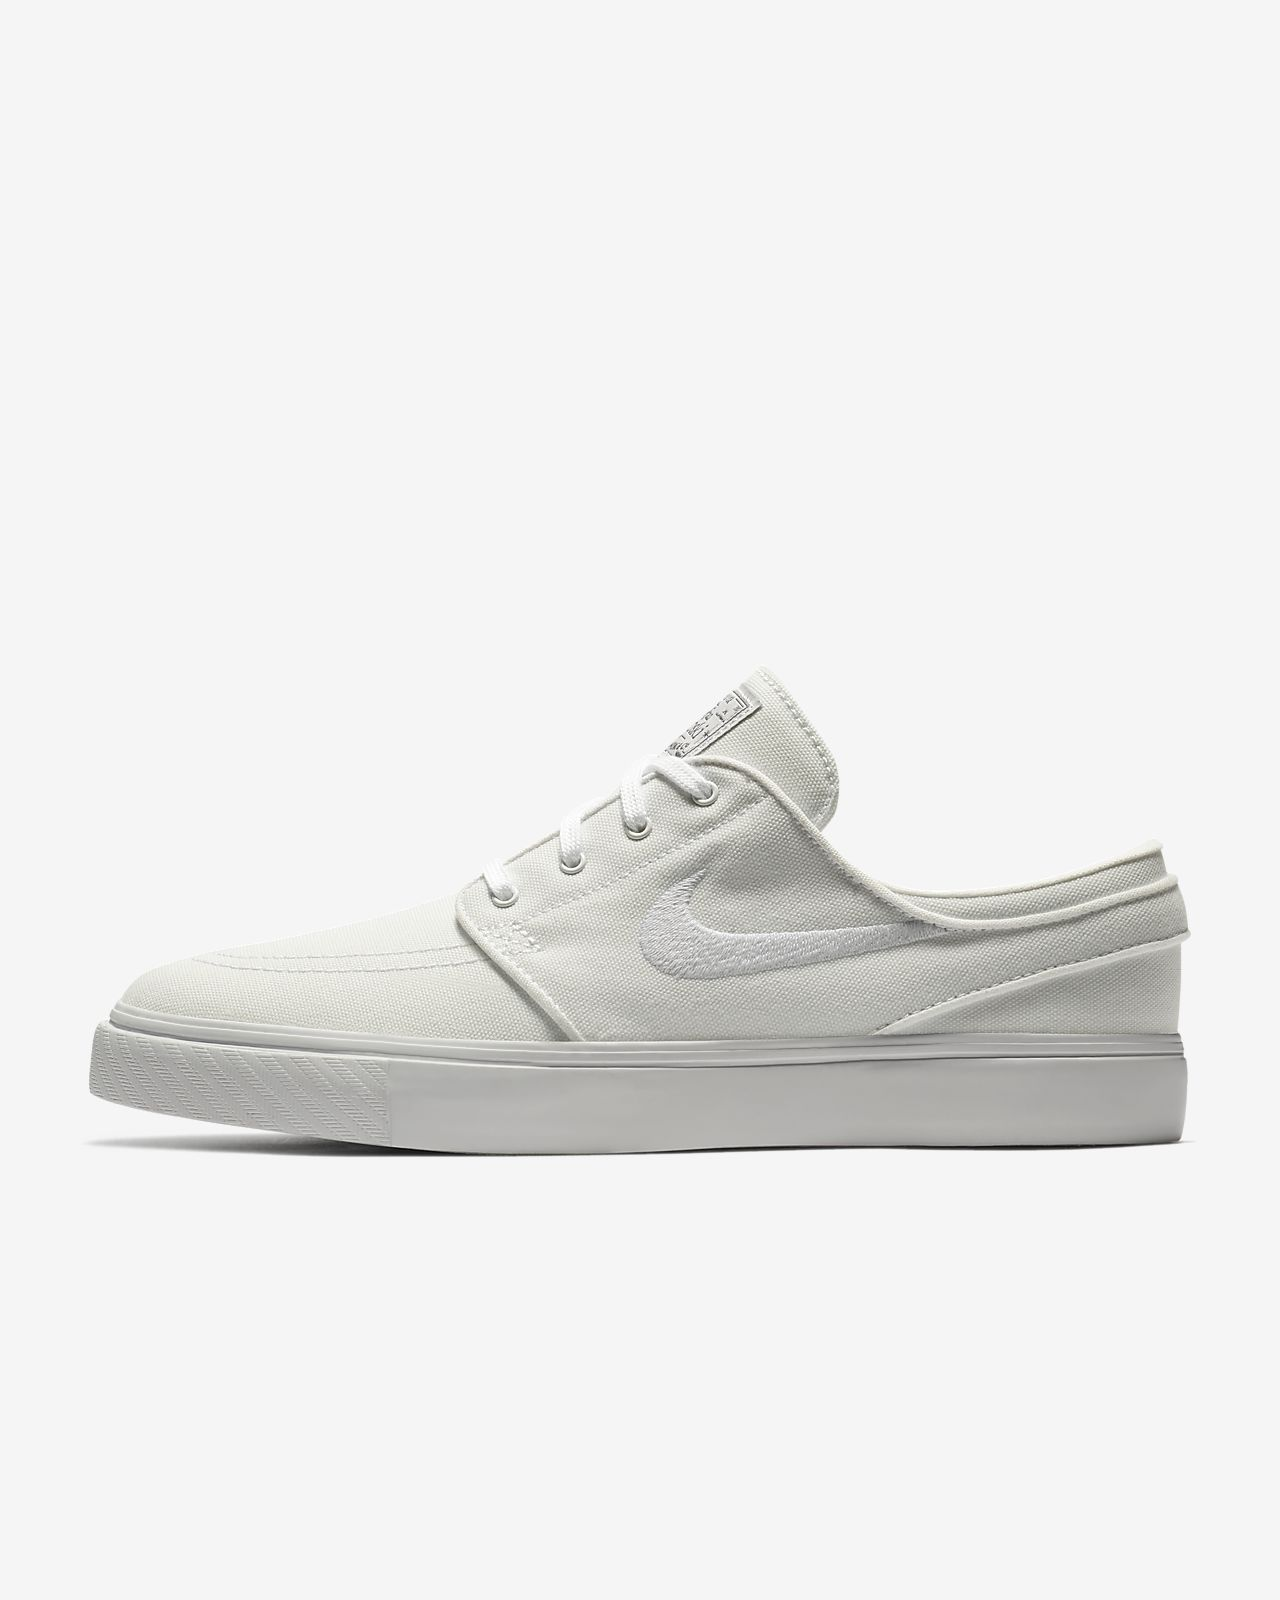 buy online f3c4b fad14 ... Nike SB Zoom Stefan Janoski Canvas Men s Skate Shoe